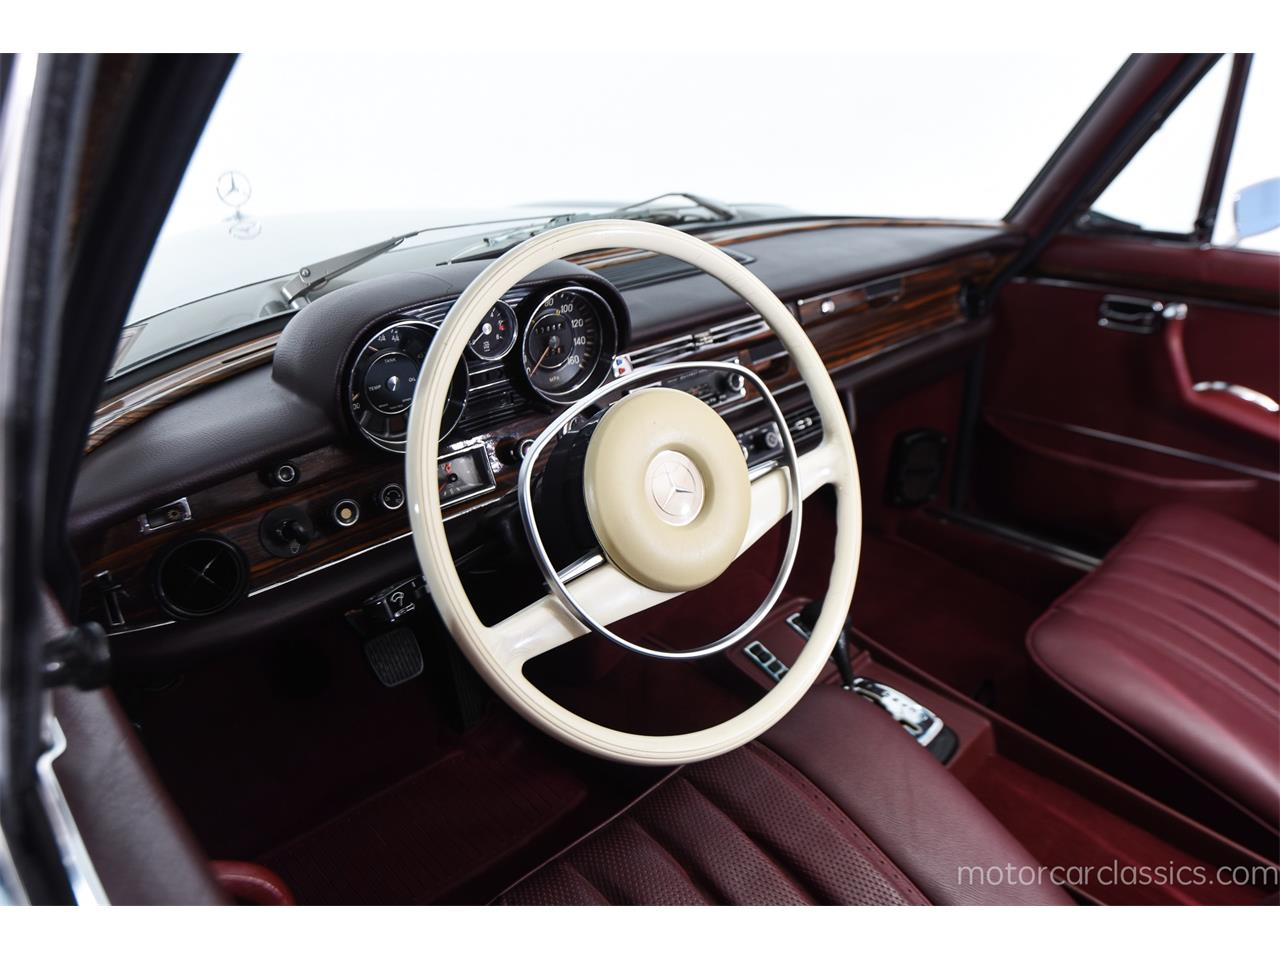 1971 Mercedes-Benz 300SEL for sale in Farmingdale, NY – photo 22